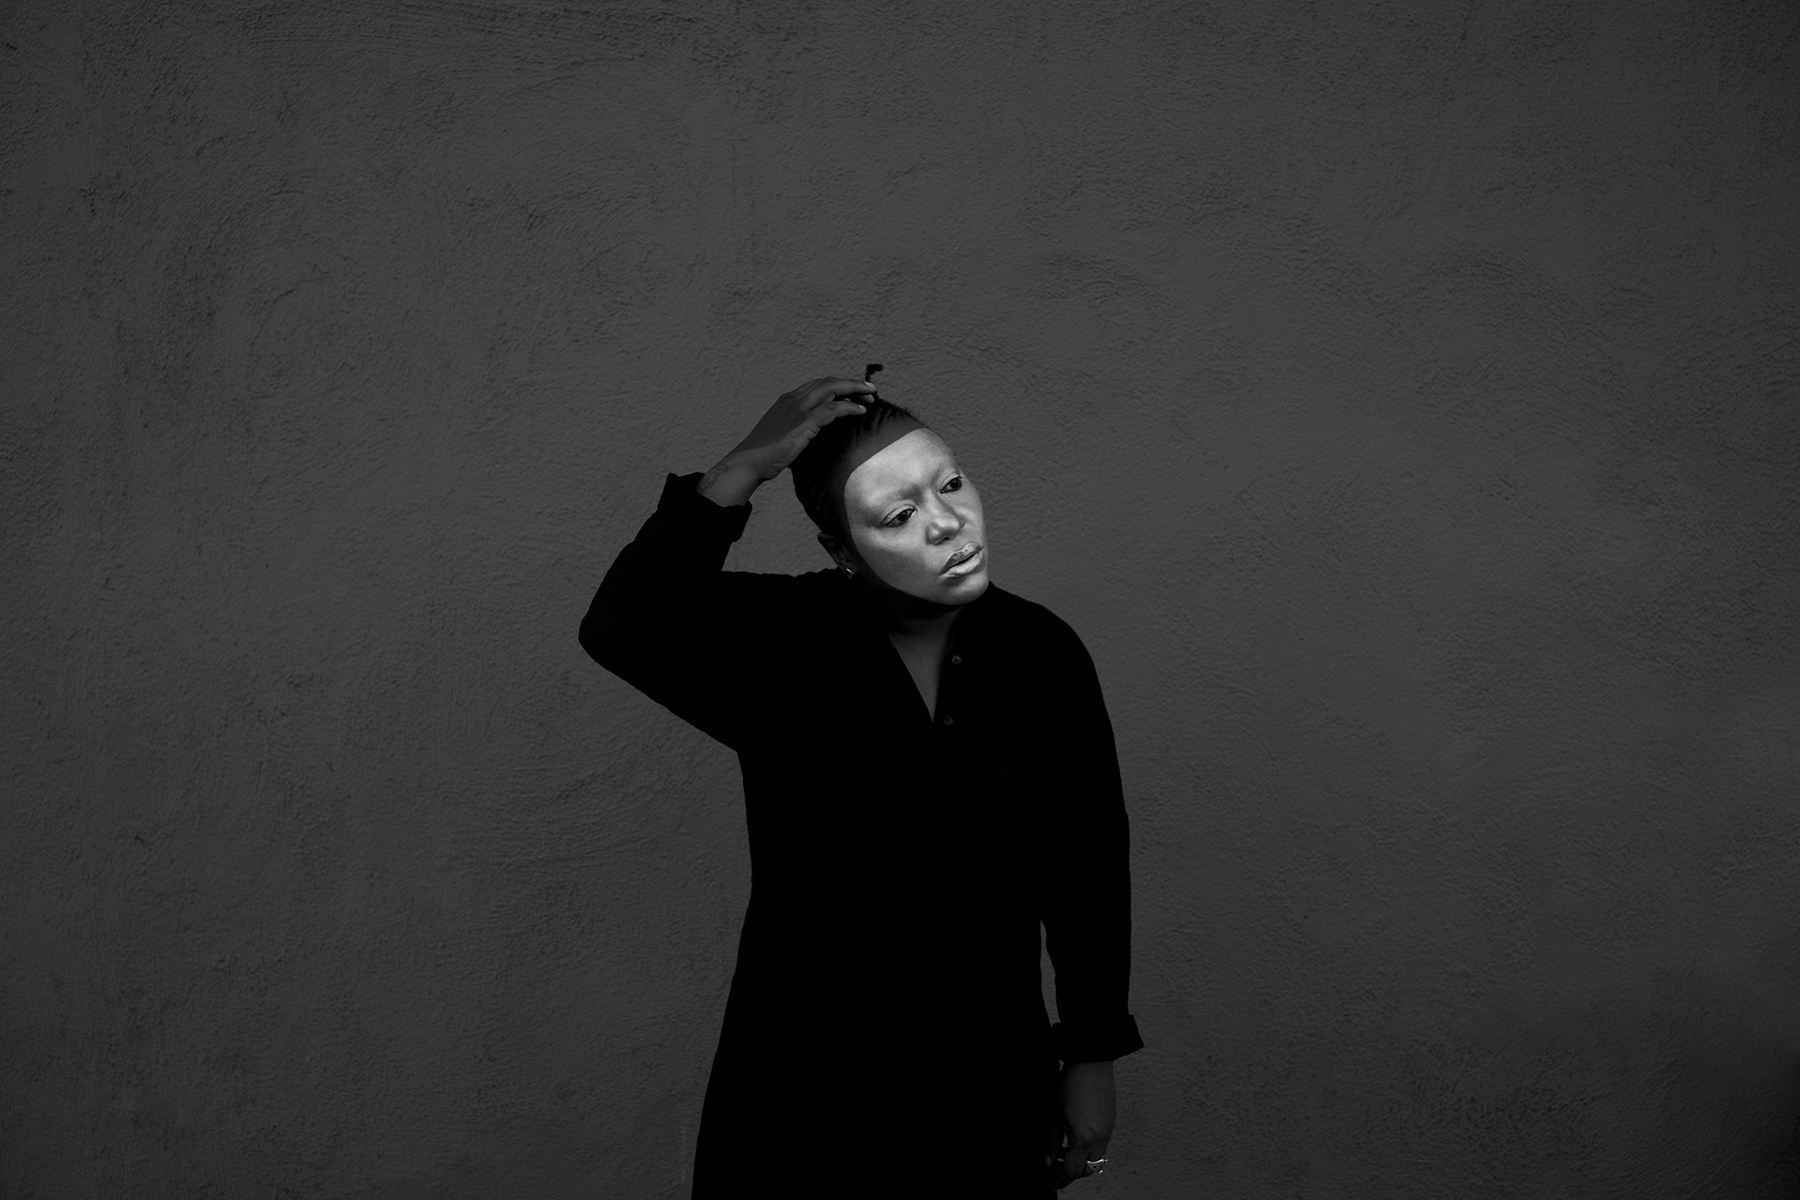 RESCHEDULED: Meshell Ndegeocello